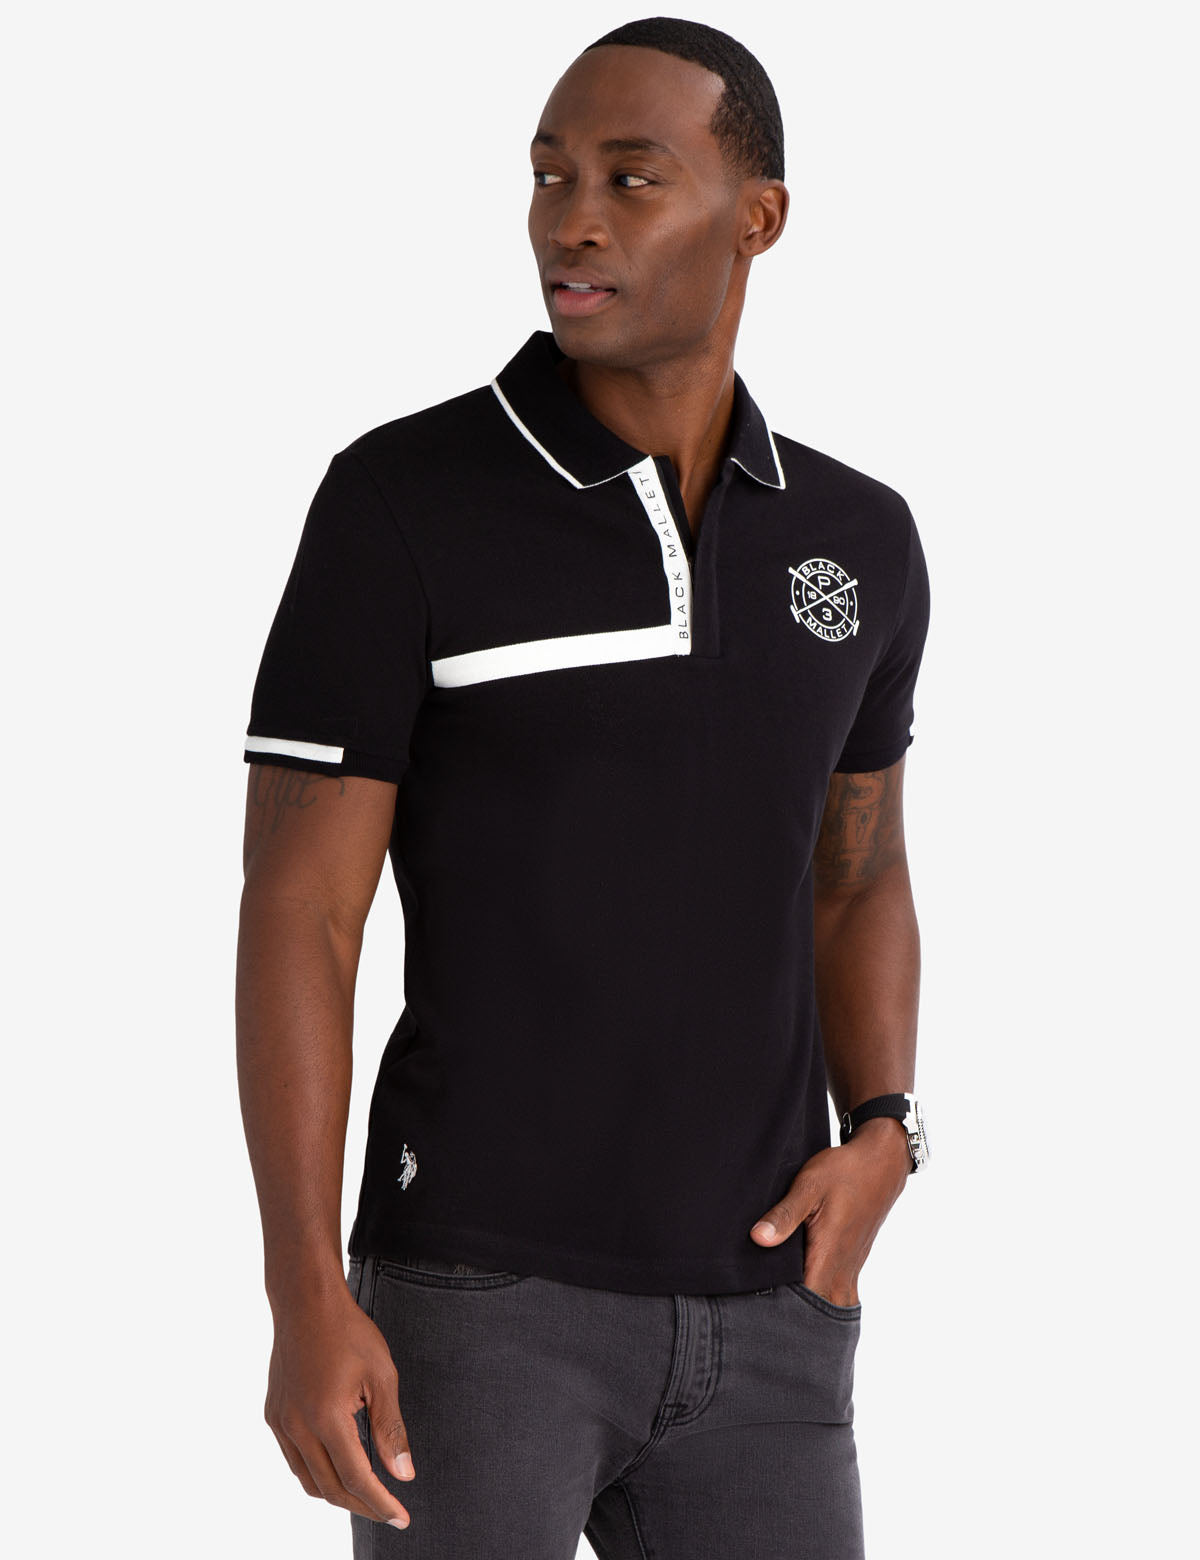 BLACK MALLET SLIM FIT ZIPPER POLO SHIRT - U.S. Polo Assn.